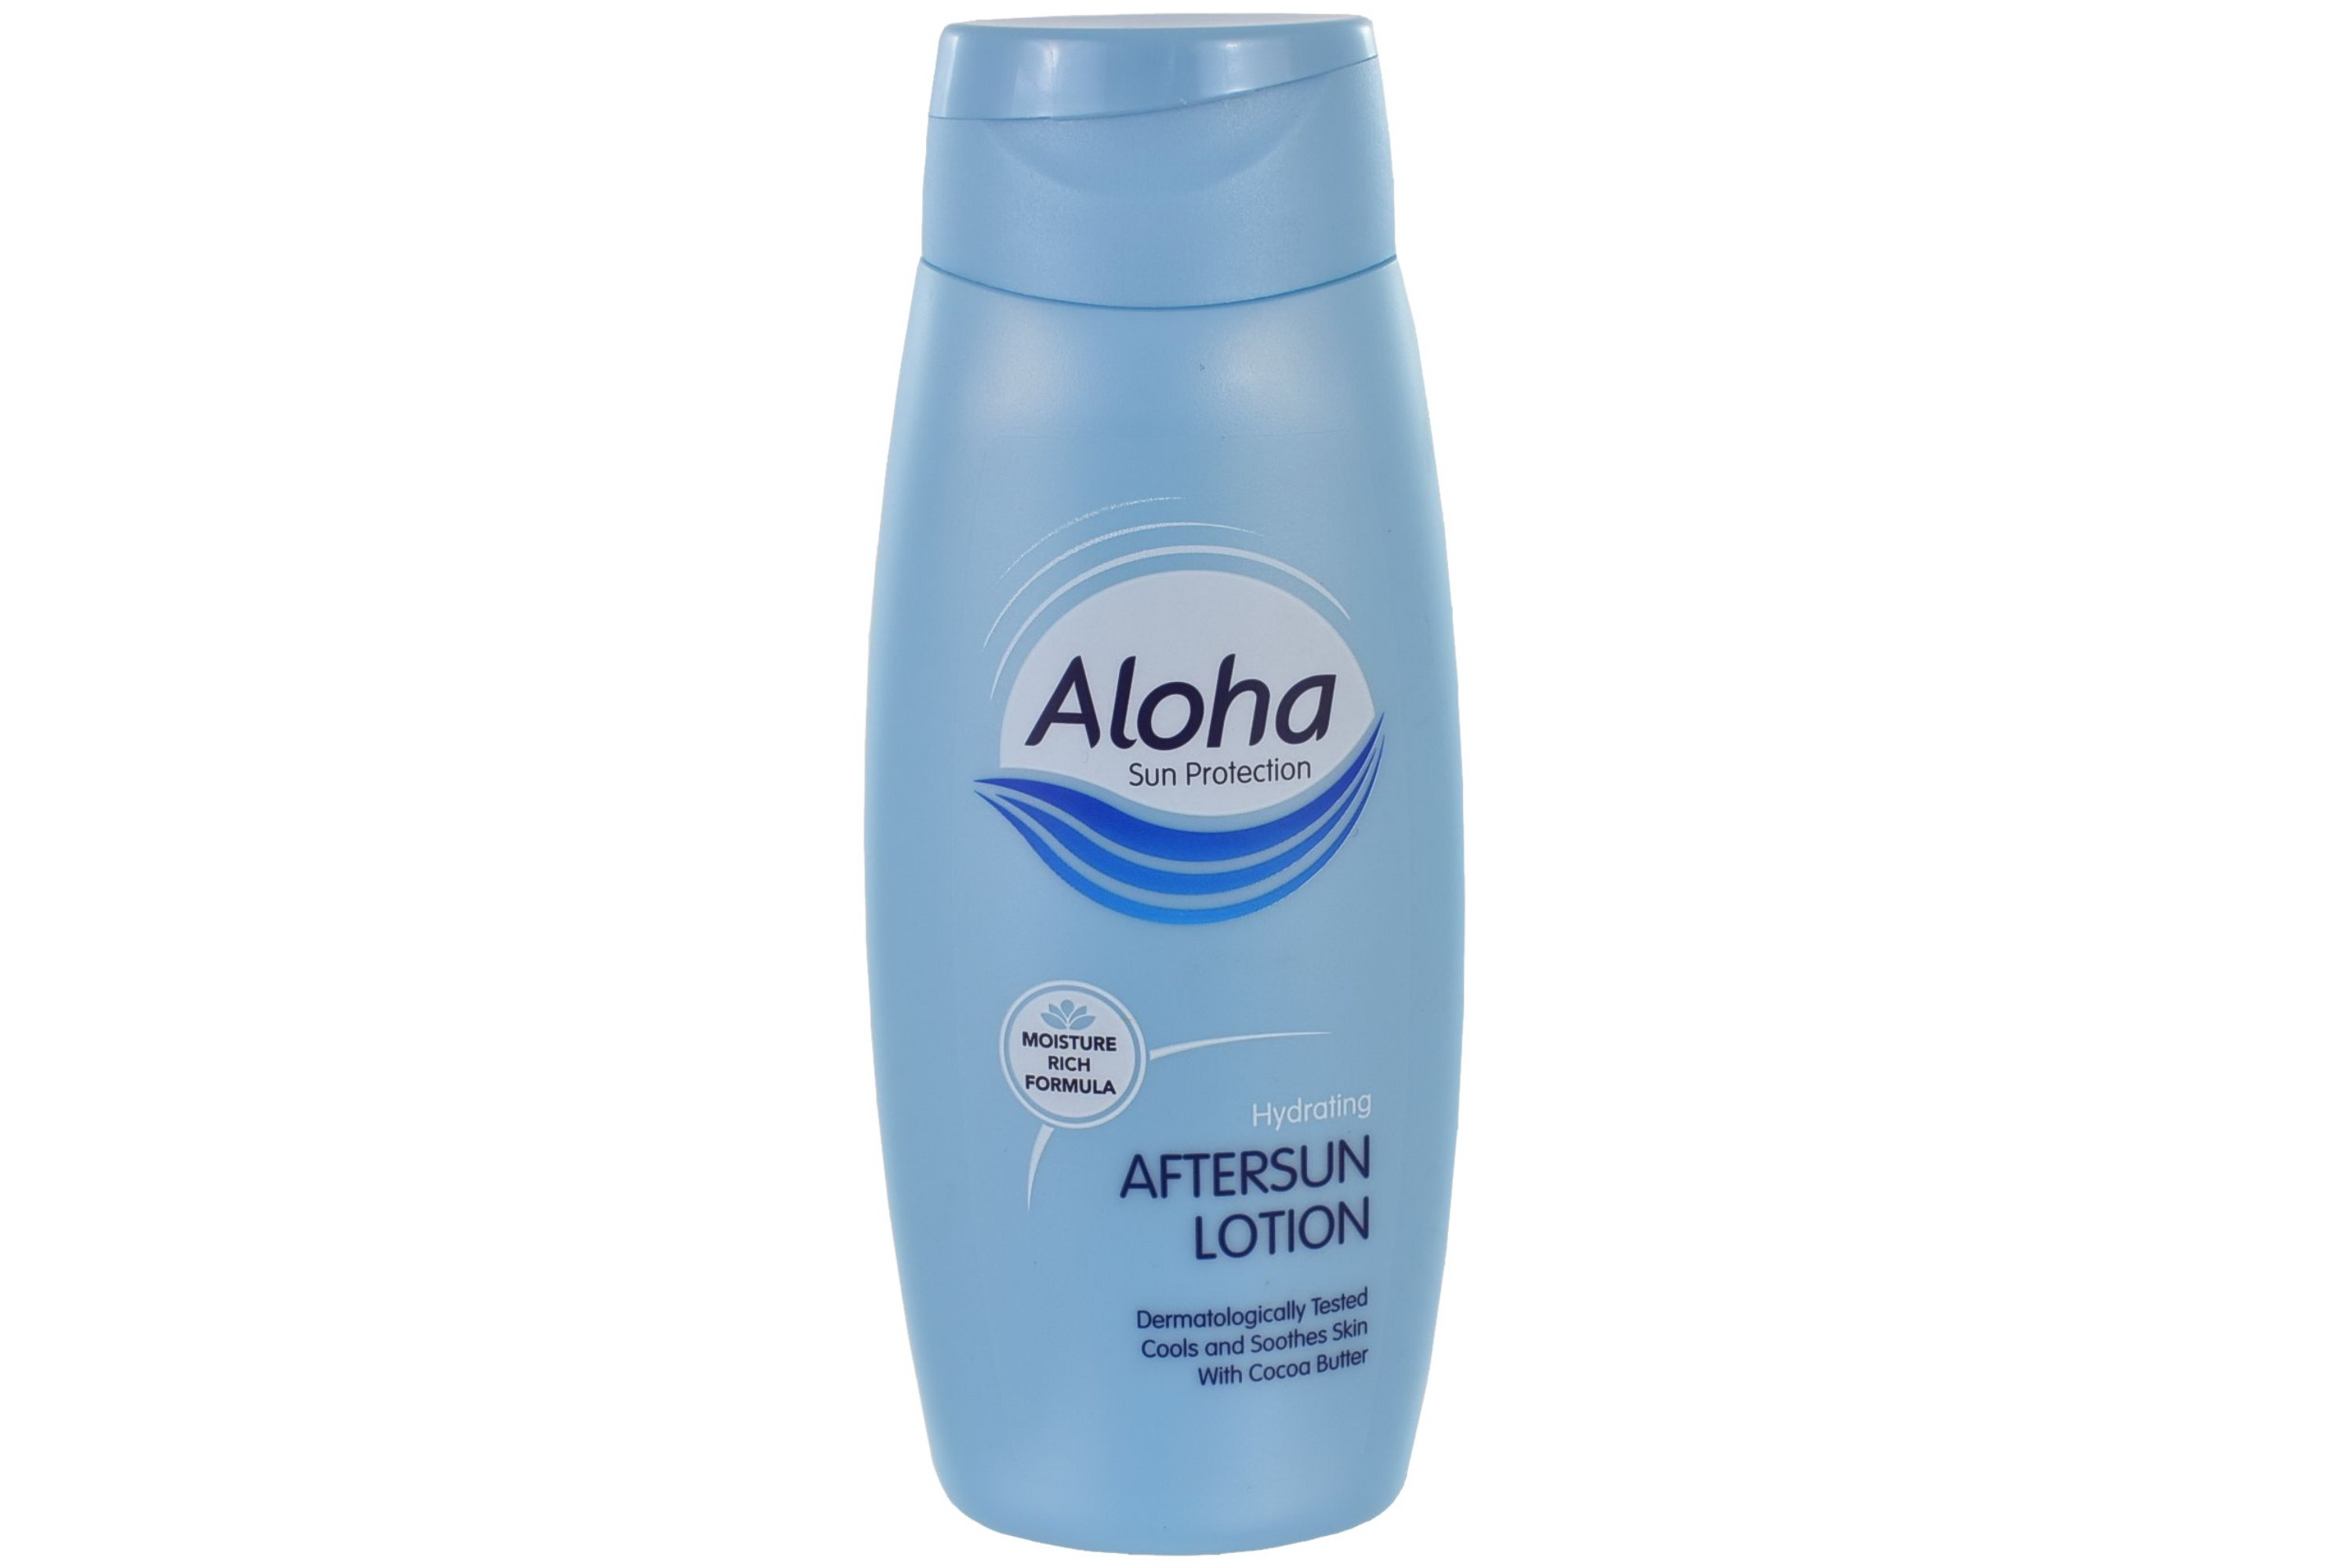 Aloha Hydrating Aftersun Lotion 250ml